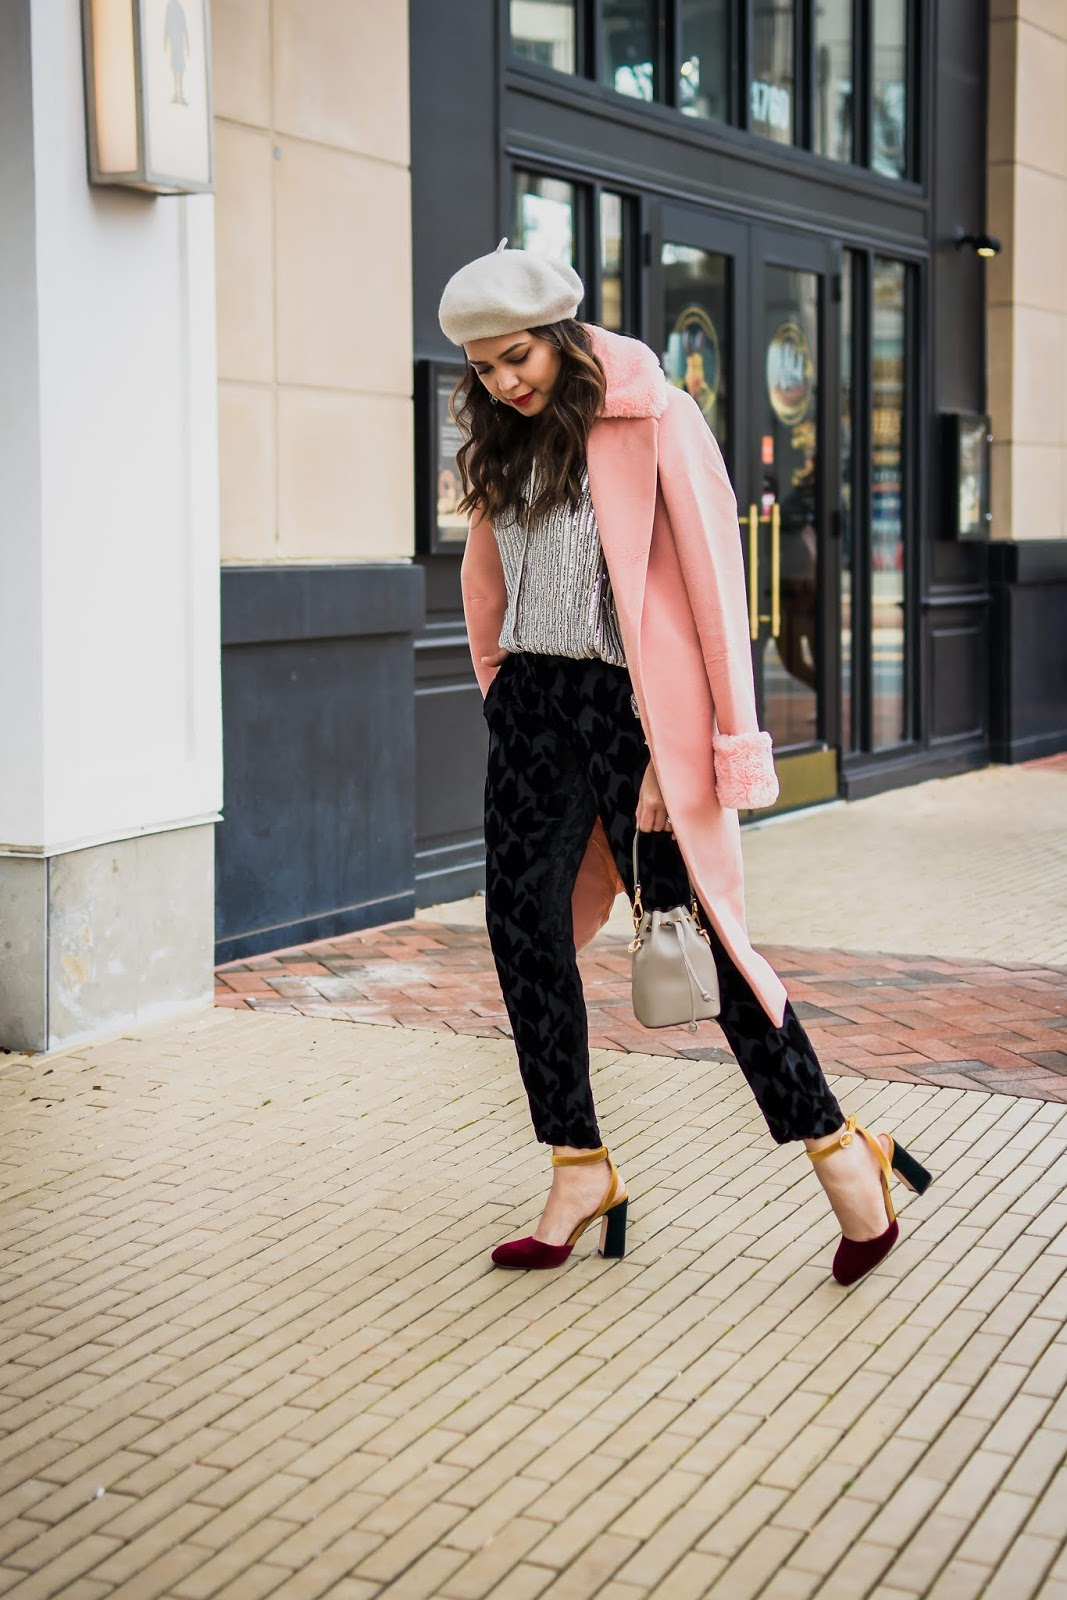 holiday outfit, what to wear to work party, pant options for women in winter, street style, H&M embellished blouse, velvet blouse, beret style, fur lined coat, myriad musings